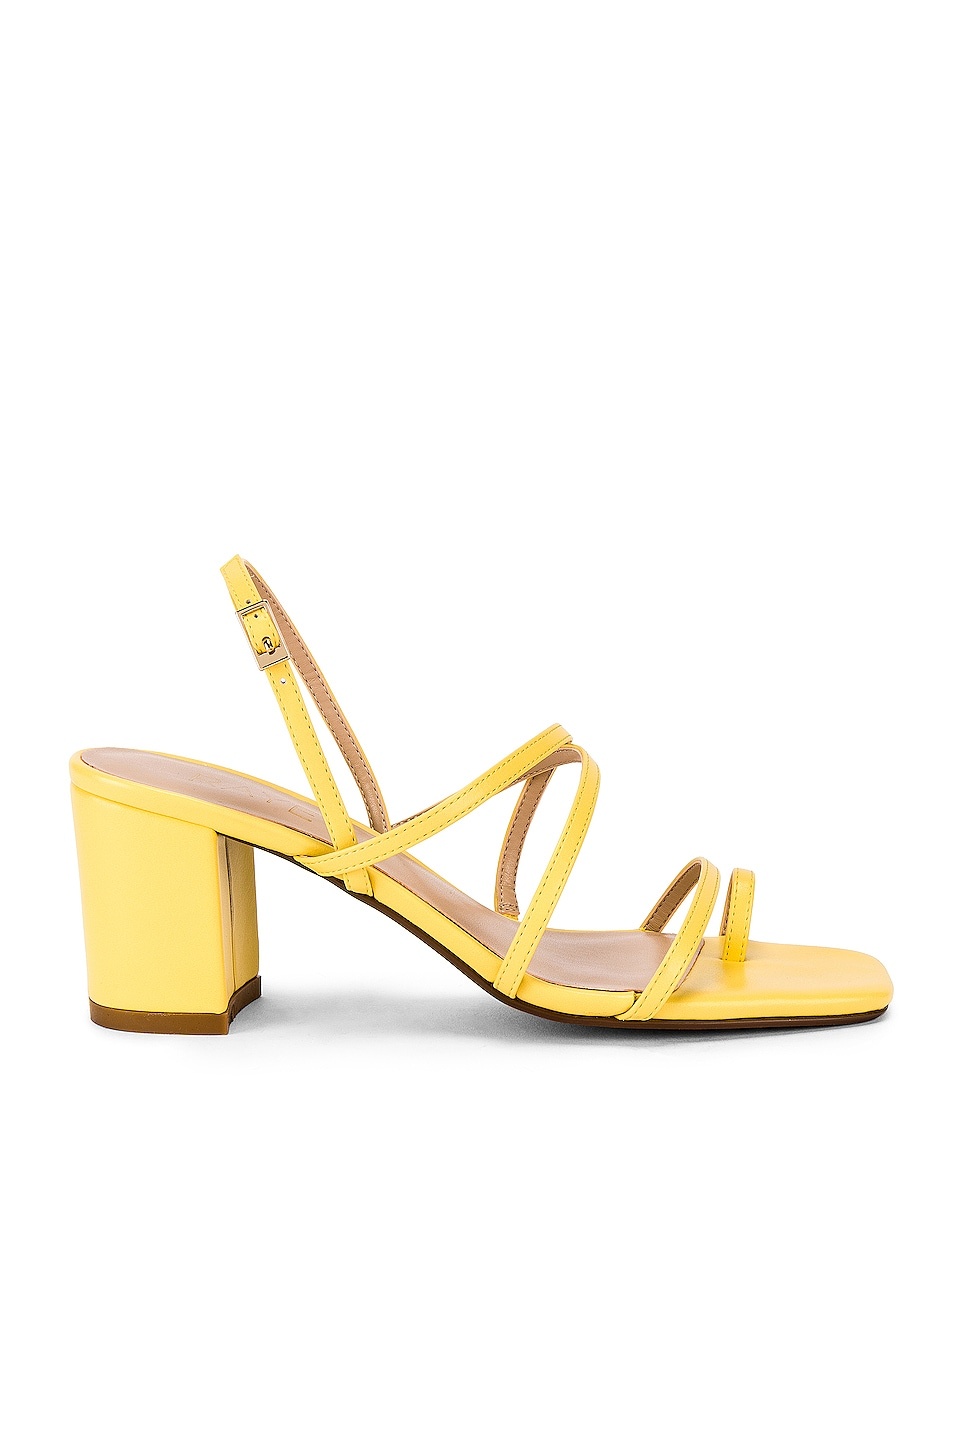 RAYE Portland Heel in Pale Yellow